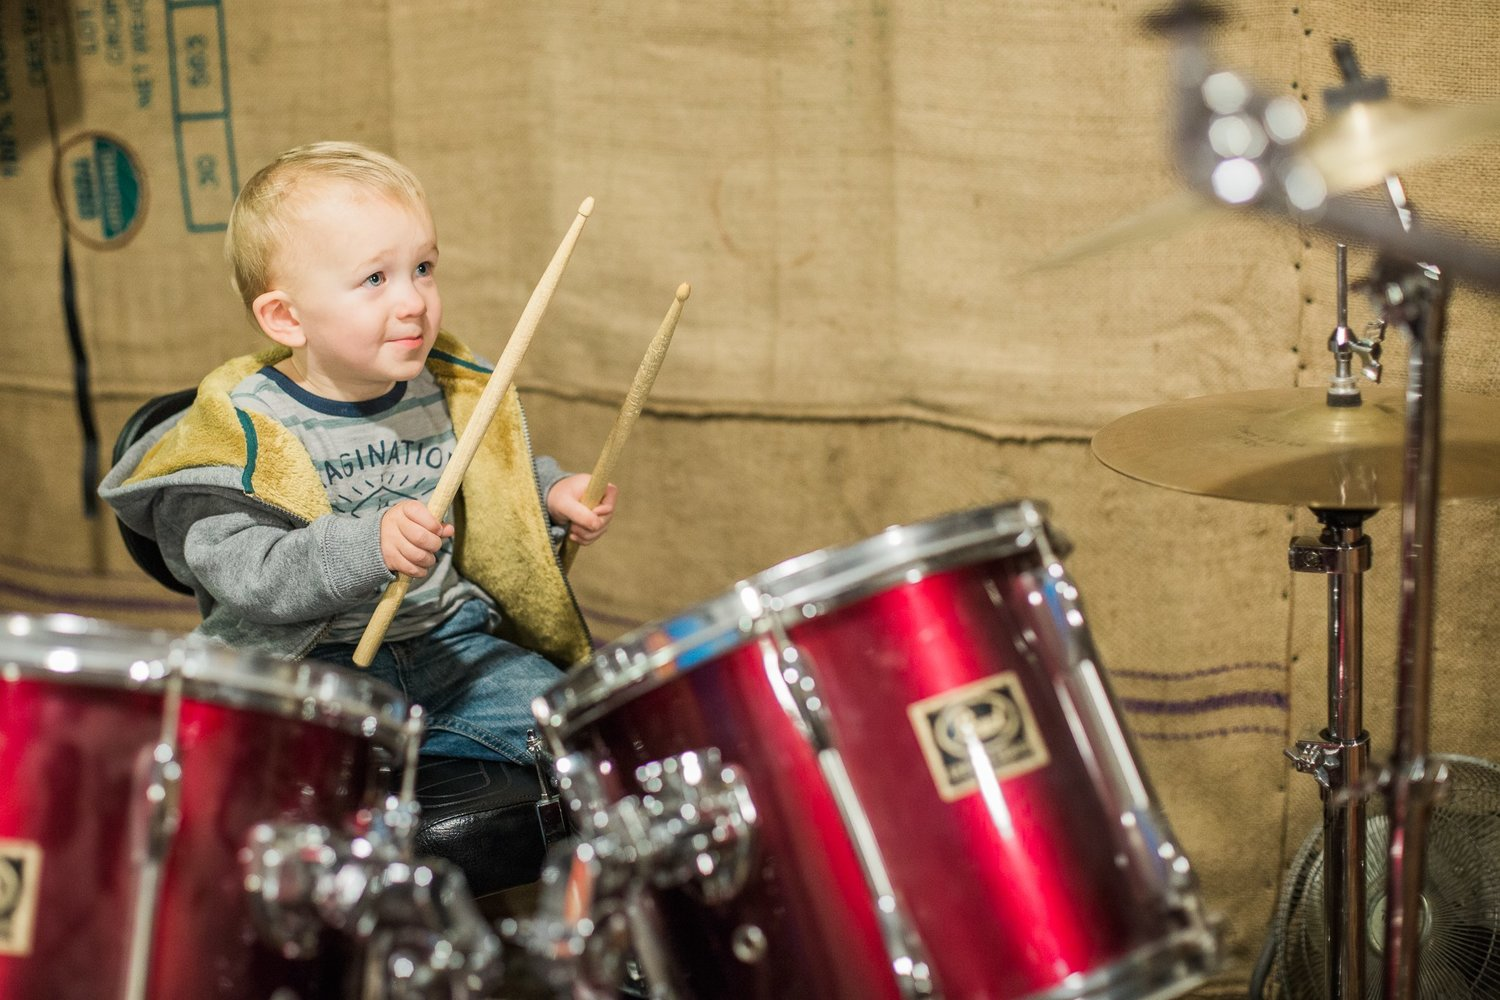 My son playing the drums at age 1. Standing to the right of the camera is his Papa, and my son's face tells you everything you need to know about how he feels right in that second.